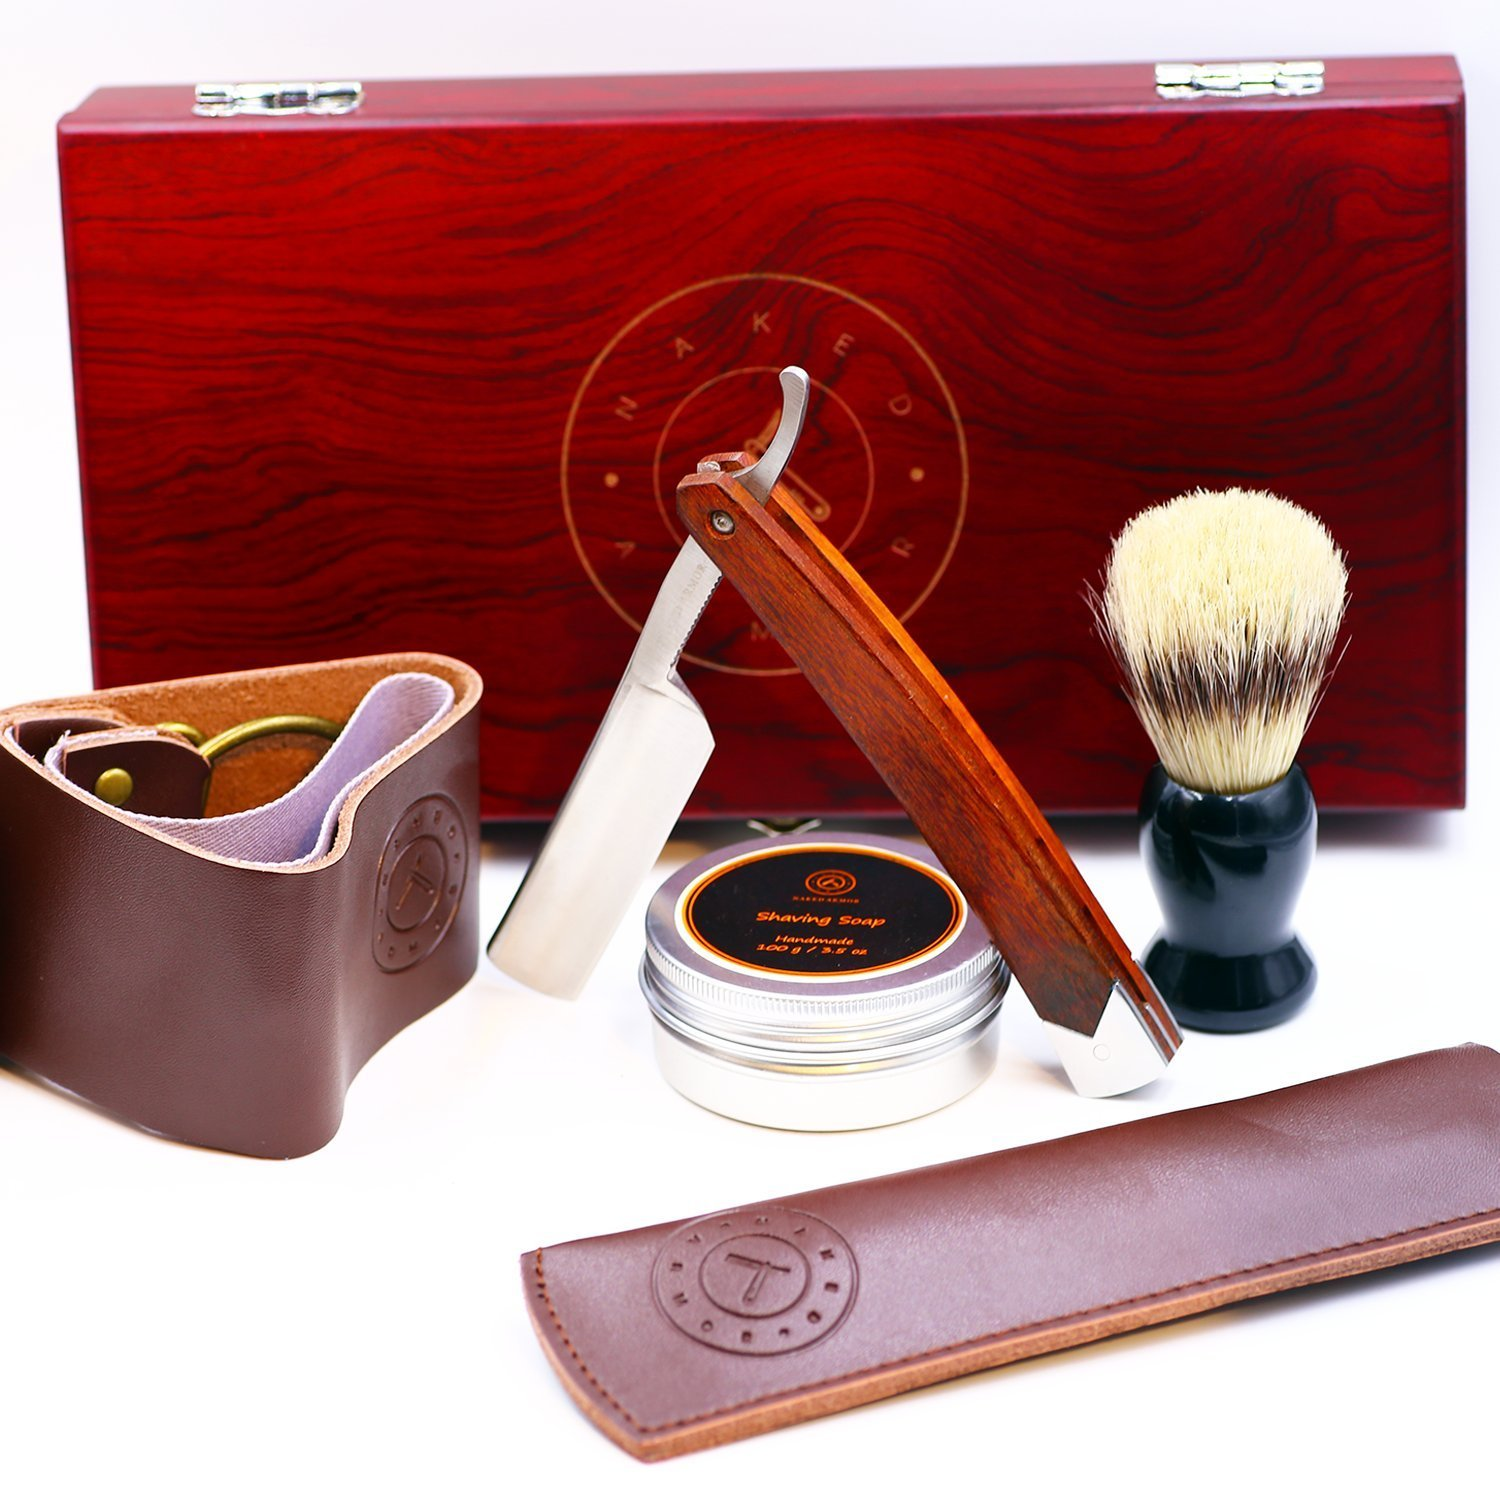 Cheap quality straight razor find quality straight razor deals on get quotations amazing straight razor shaving kit quality shave at home samurai strong sharp edge japanese baditri Image collections